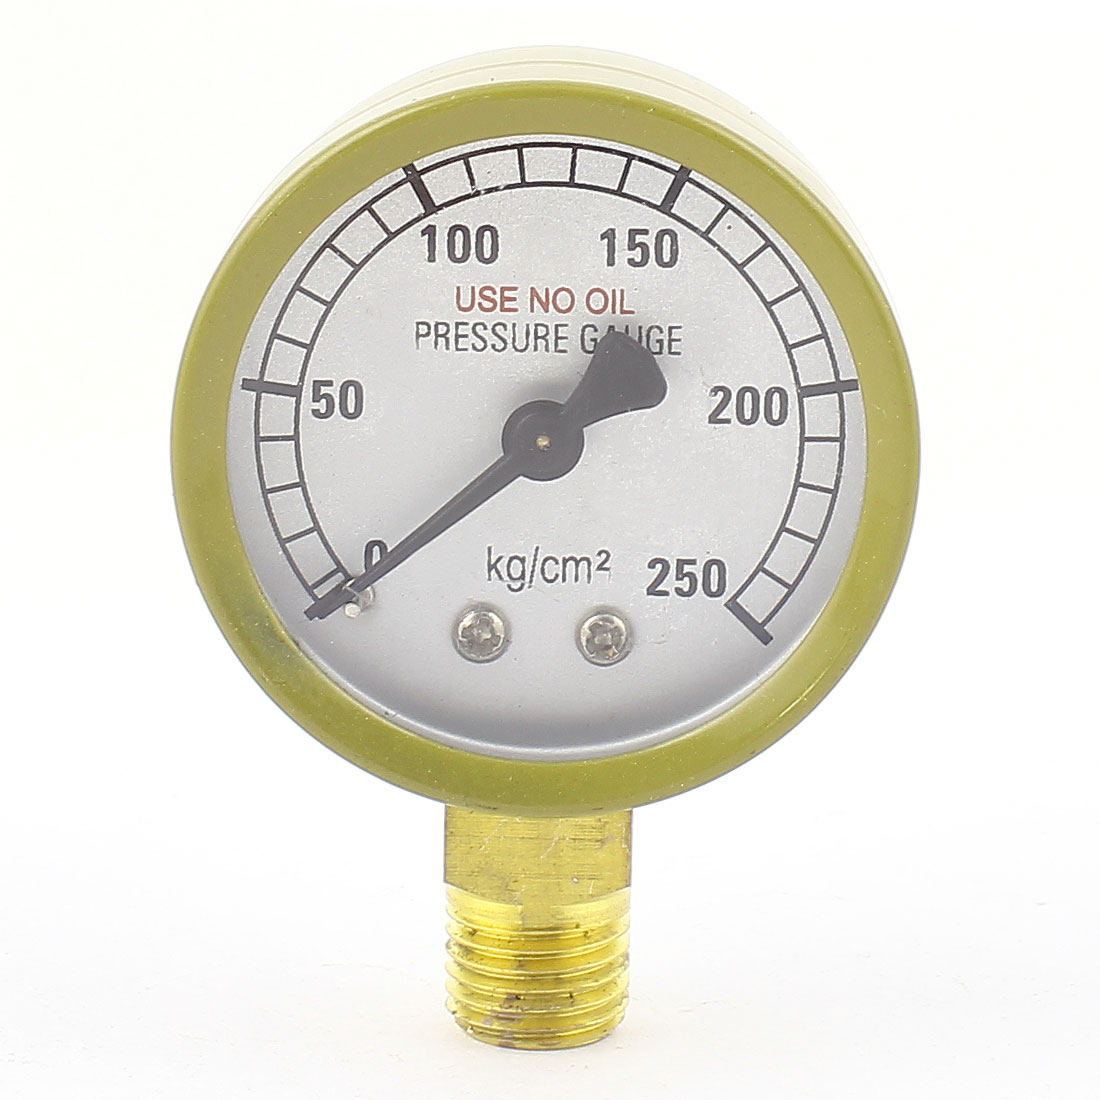 1/4BSP Male Thread 0-245Bar Air Pneumatic Pressure Gauge Manometer Meter